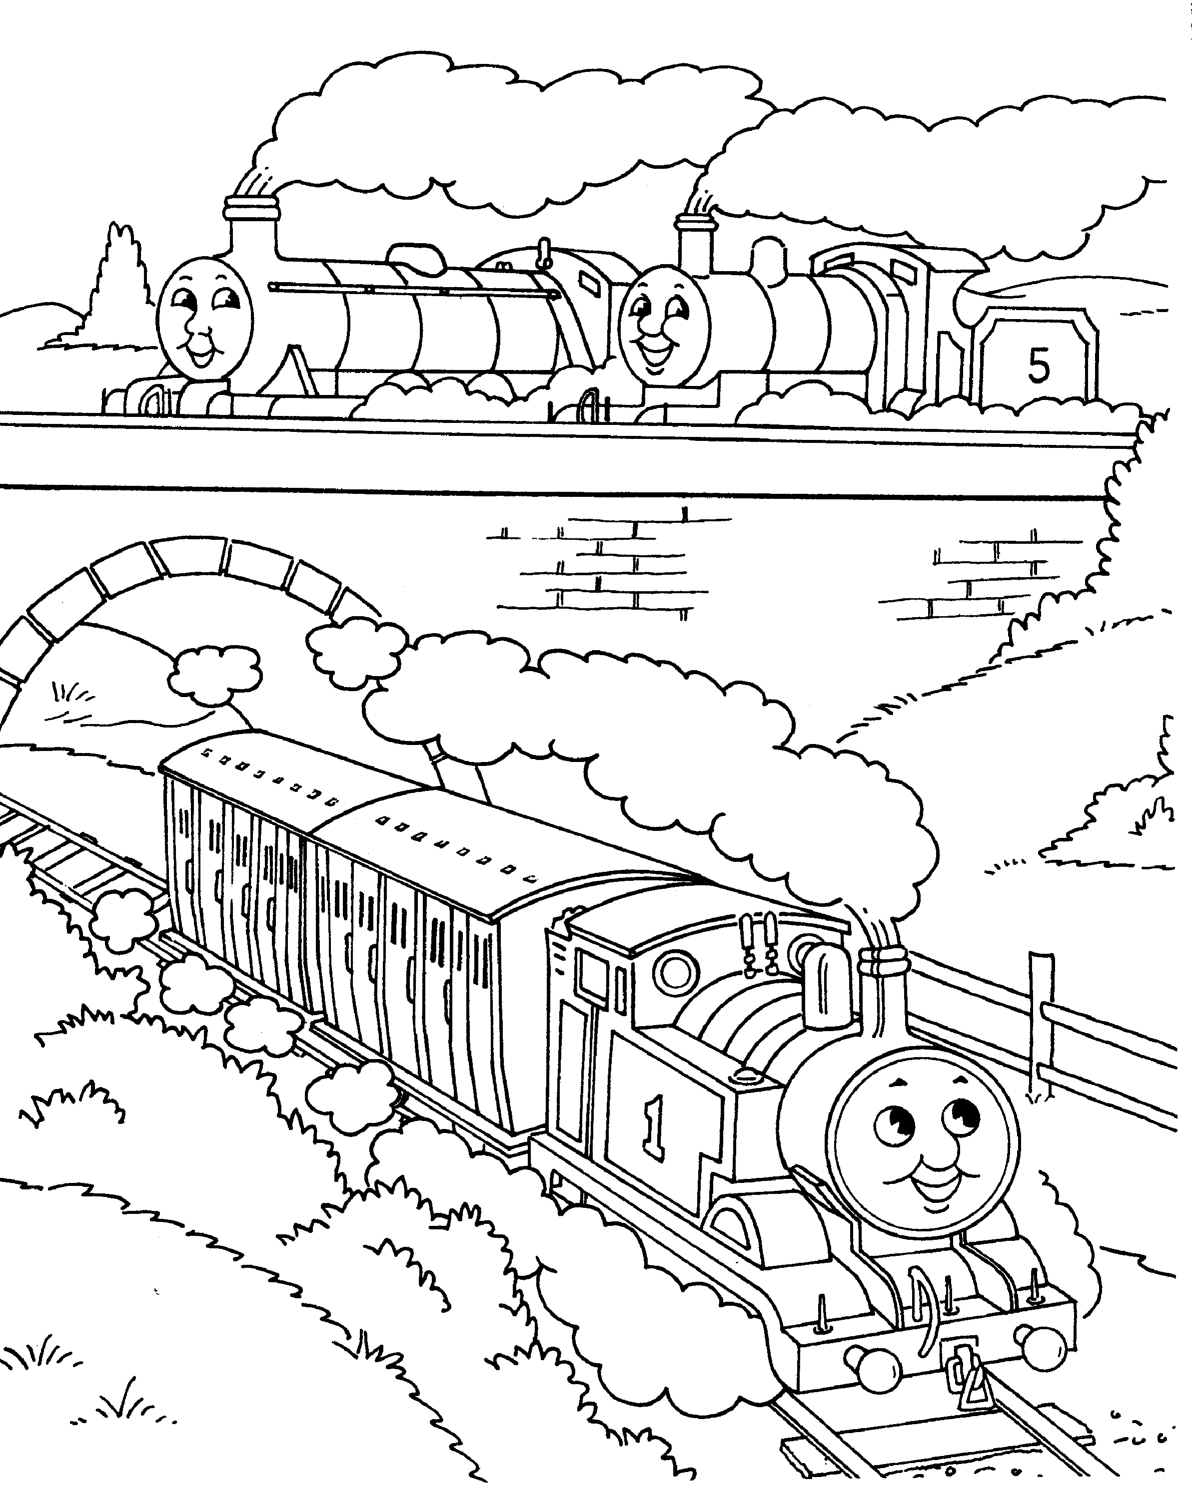 Thomas The Train And His Friends Coloring Pages Thomas The Train Coloring Pages Hunro Col Train Coloring Pages Cartoon Coloring Pages Free Coloring Pages